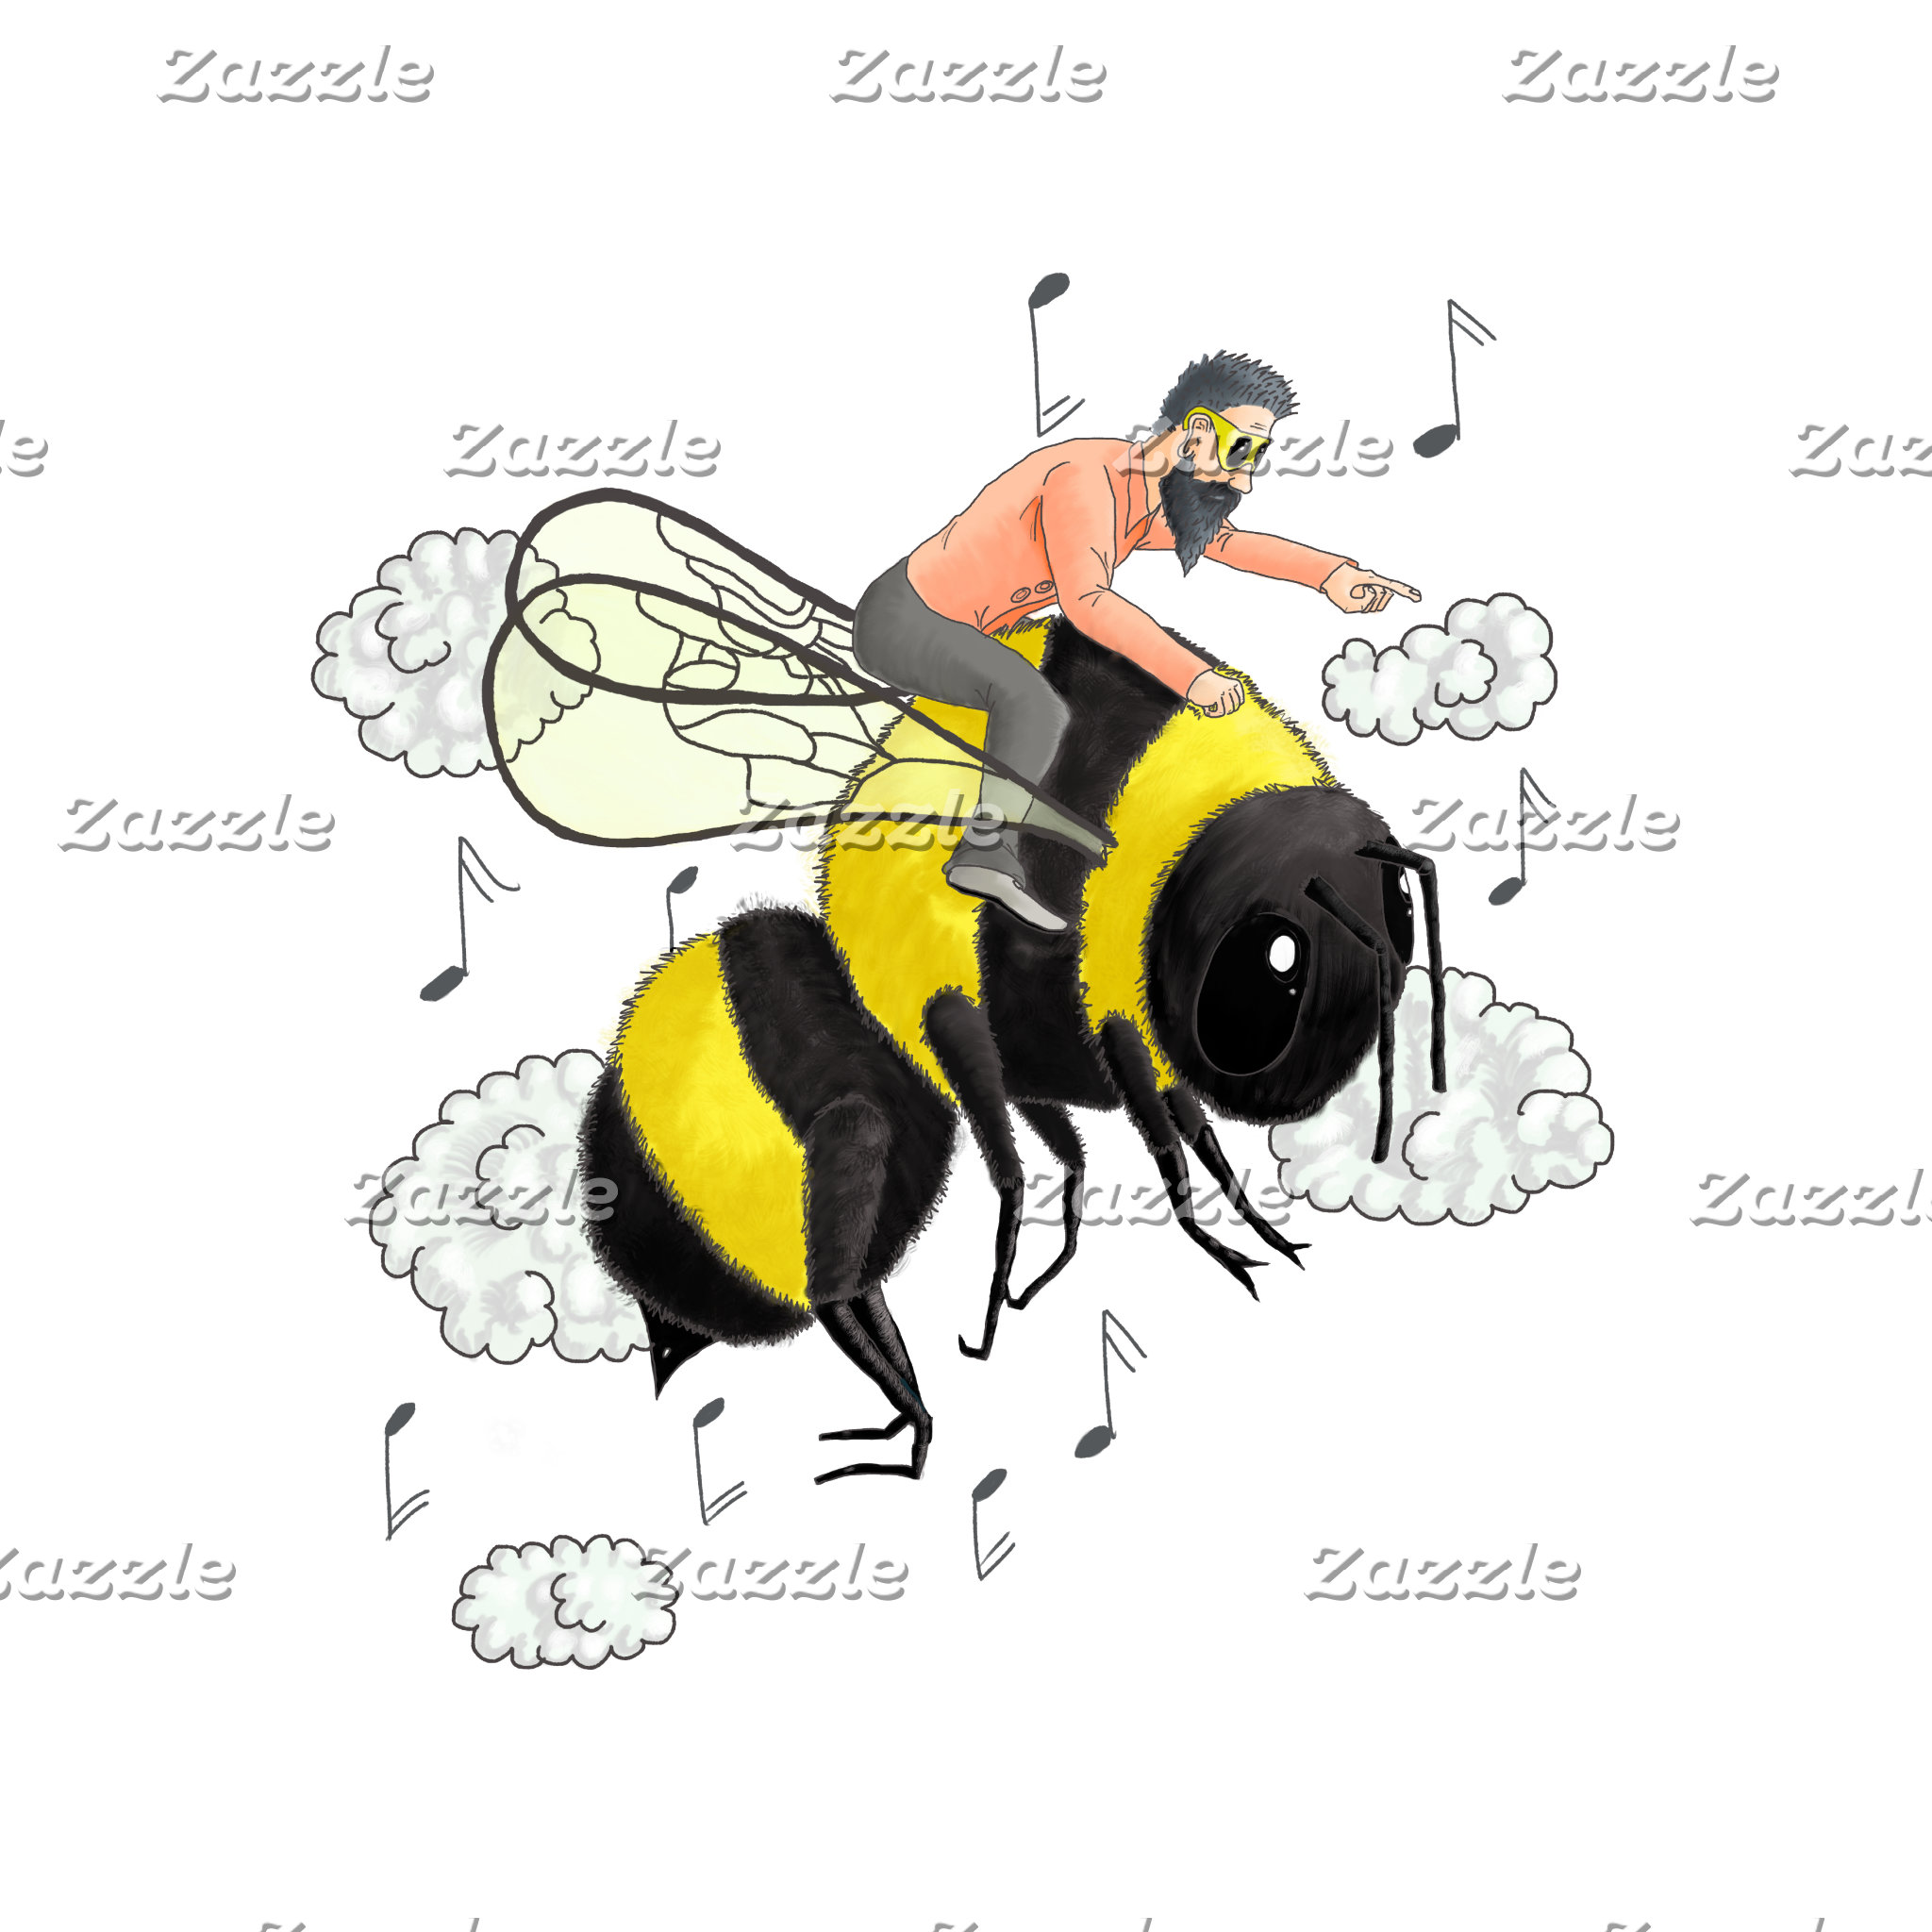 Flight of the Bumblebee by Nicolai Rimsky-Korsakov